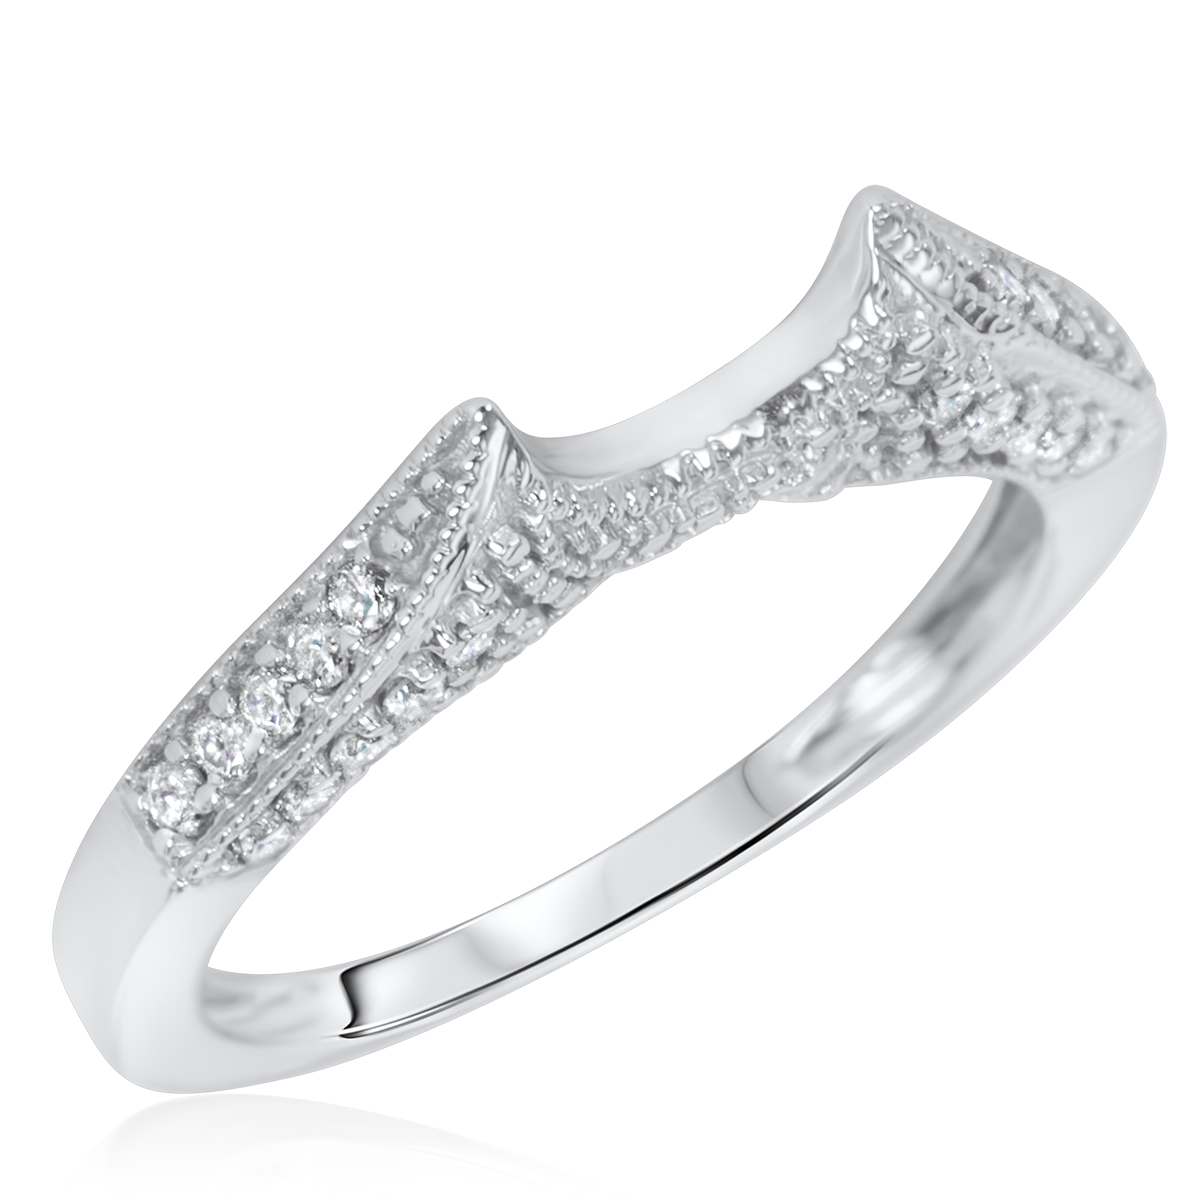 Women39;s Wedding Ring 10K White Gold  My Trio Rings  BT103W10KL